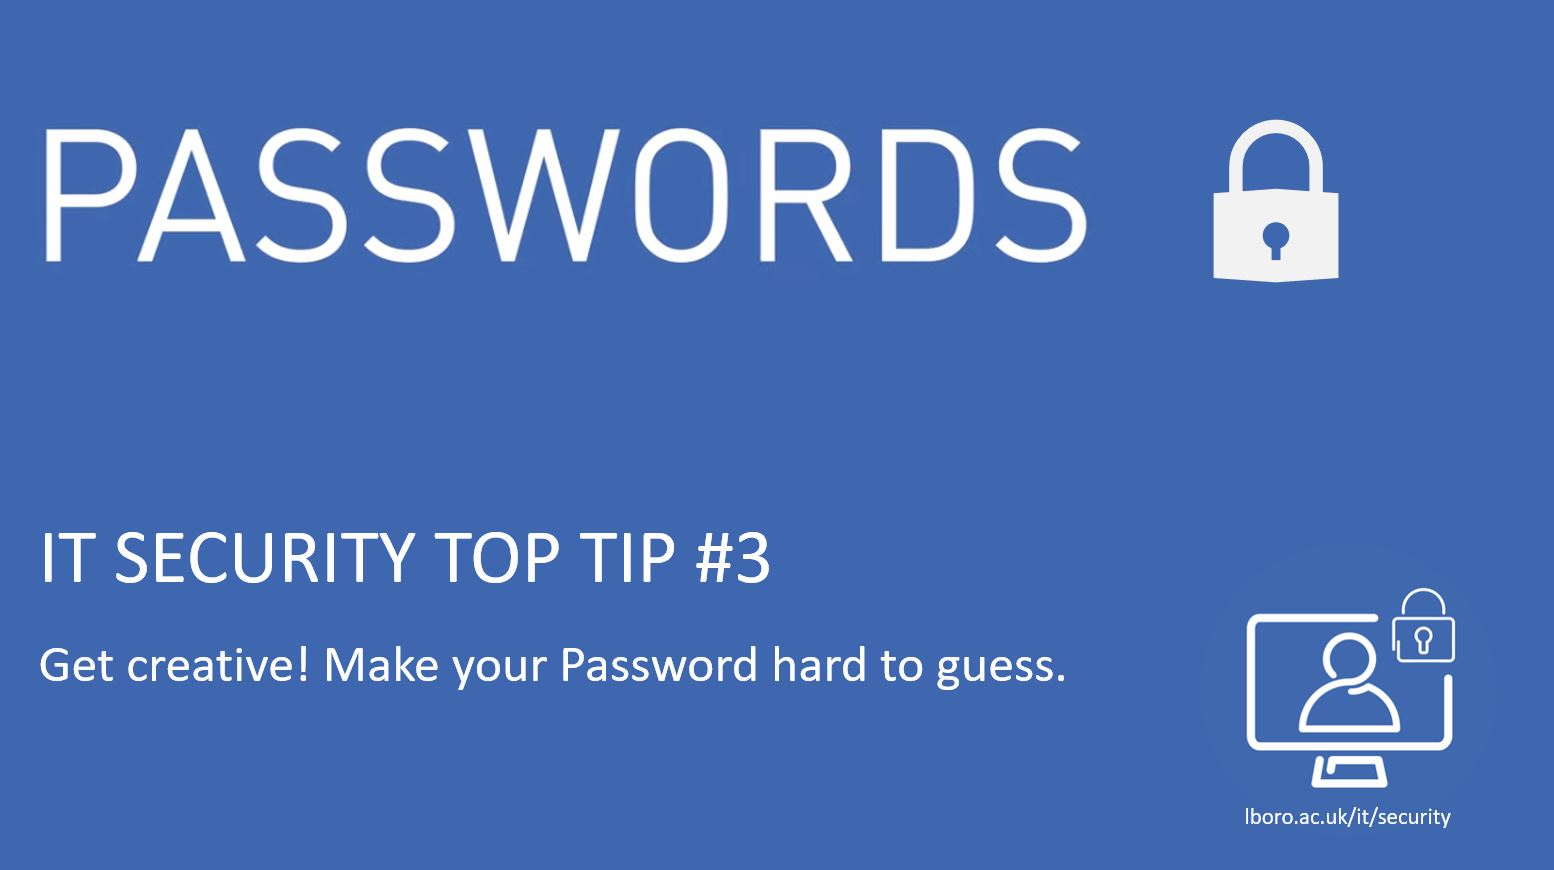 Make your password hard to guess